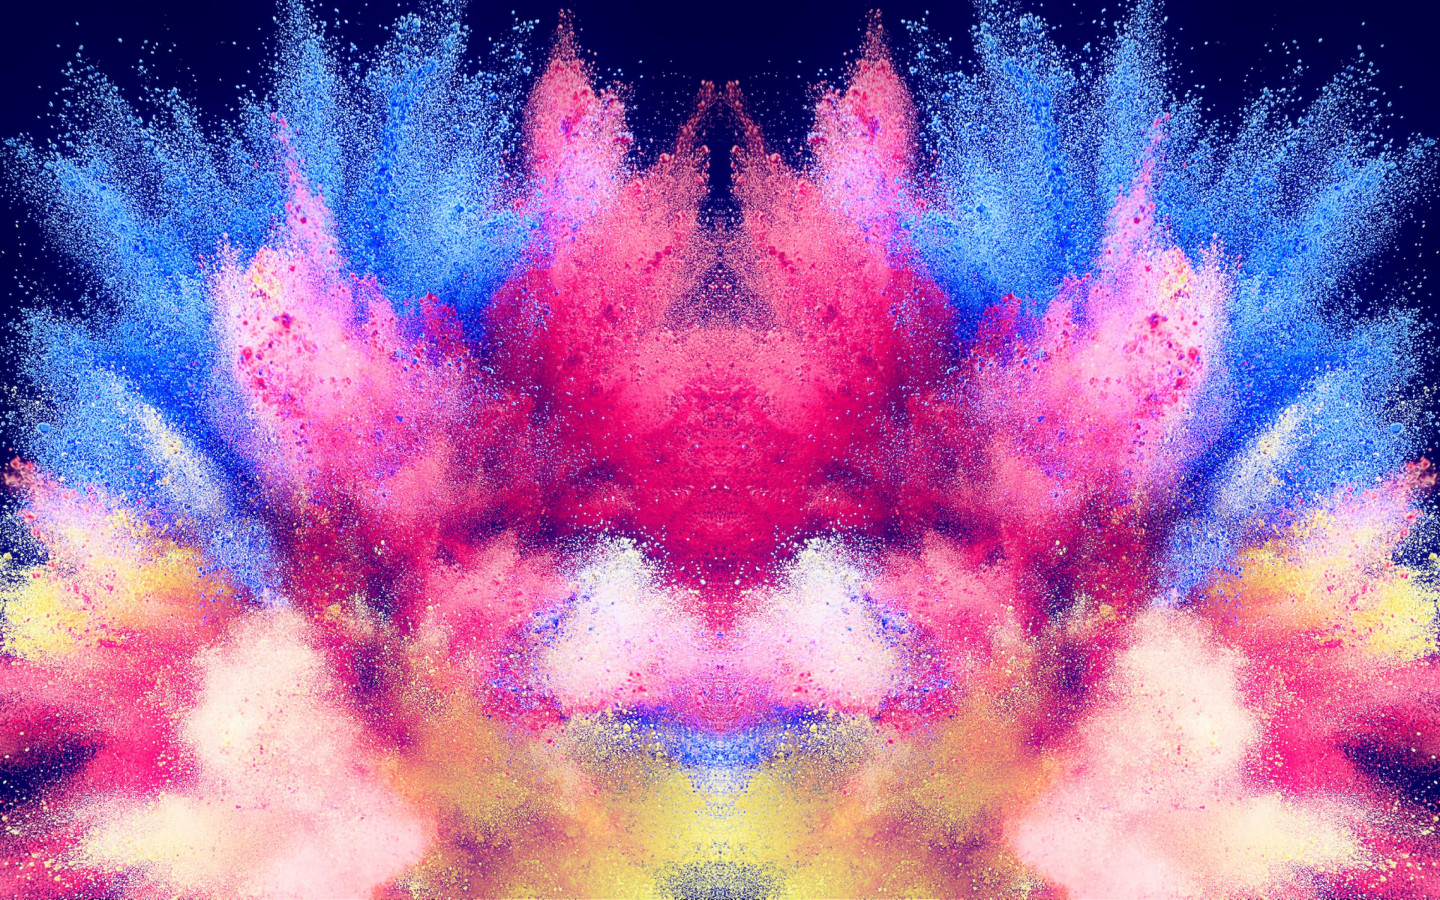 Abstract illustration: Powder colors wallpaper 1440x900